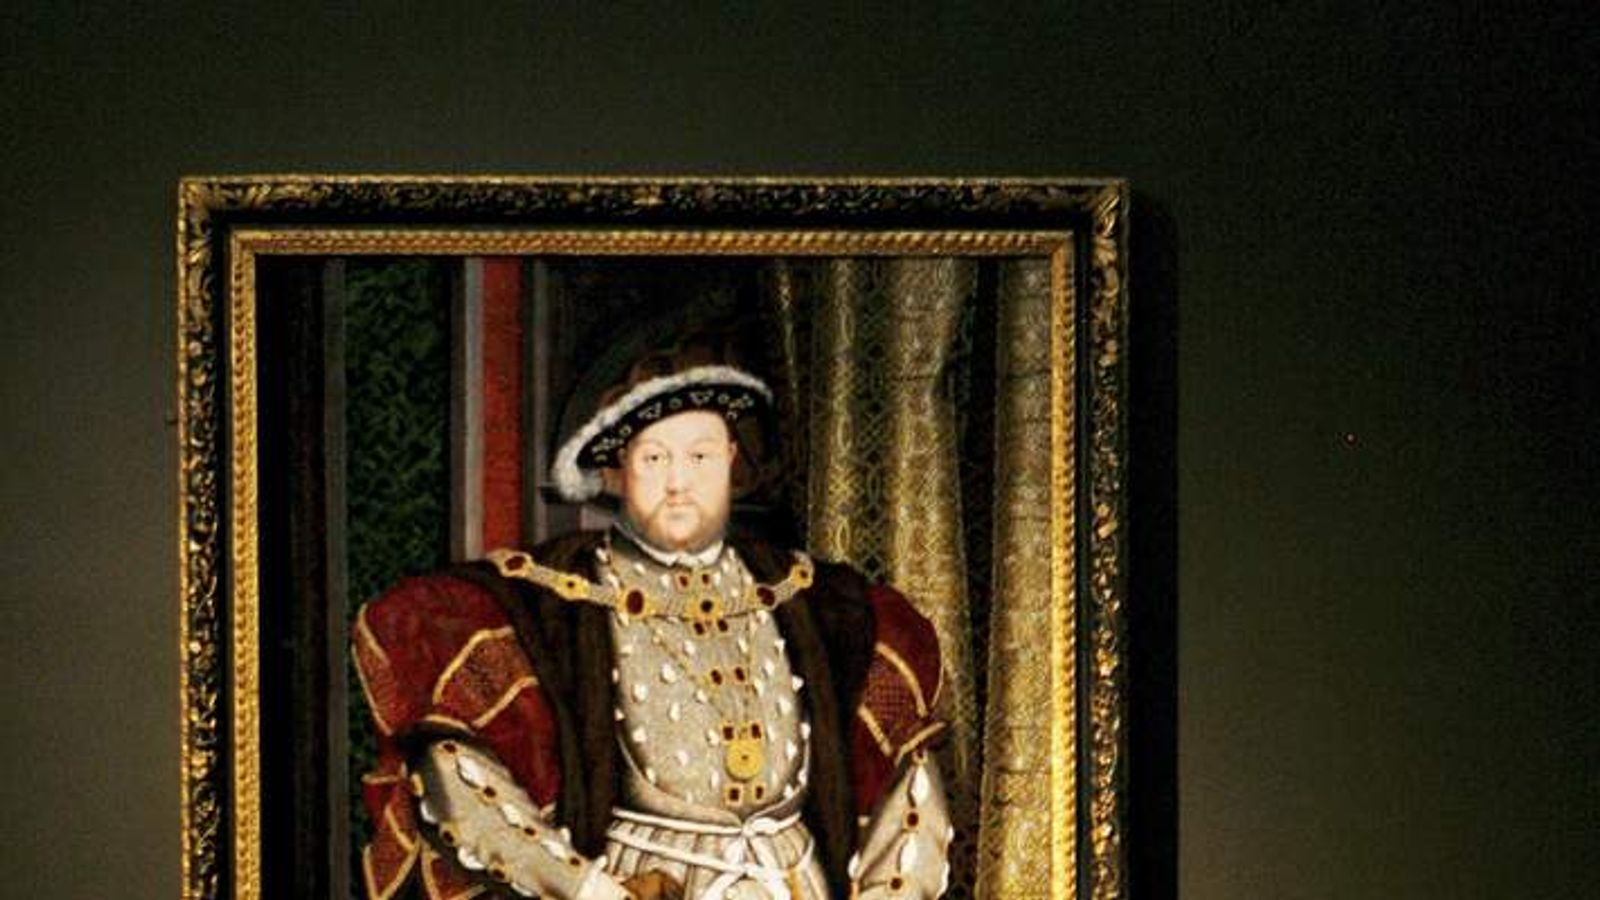 Painting of Henry VIII In Diisplay Of Holbein In England